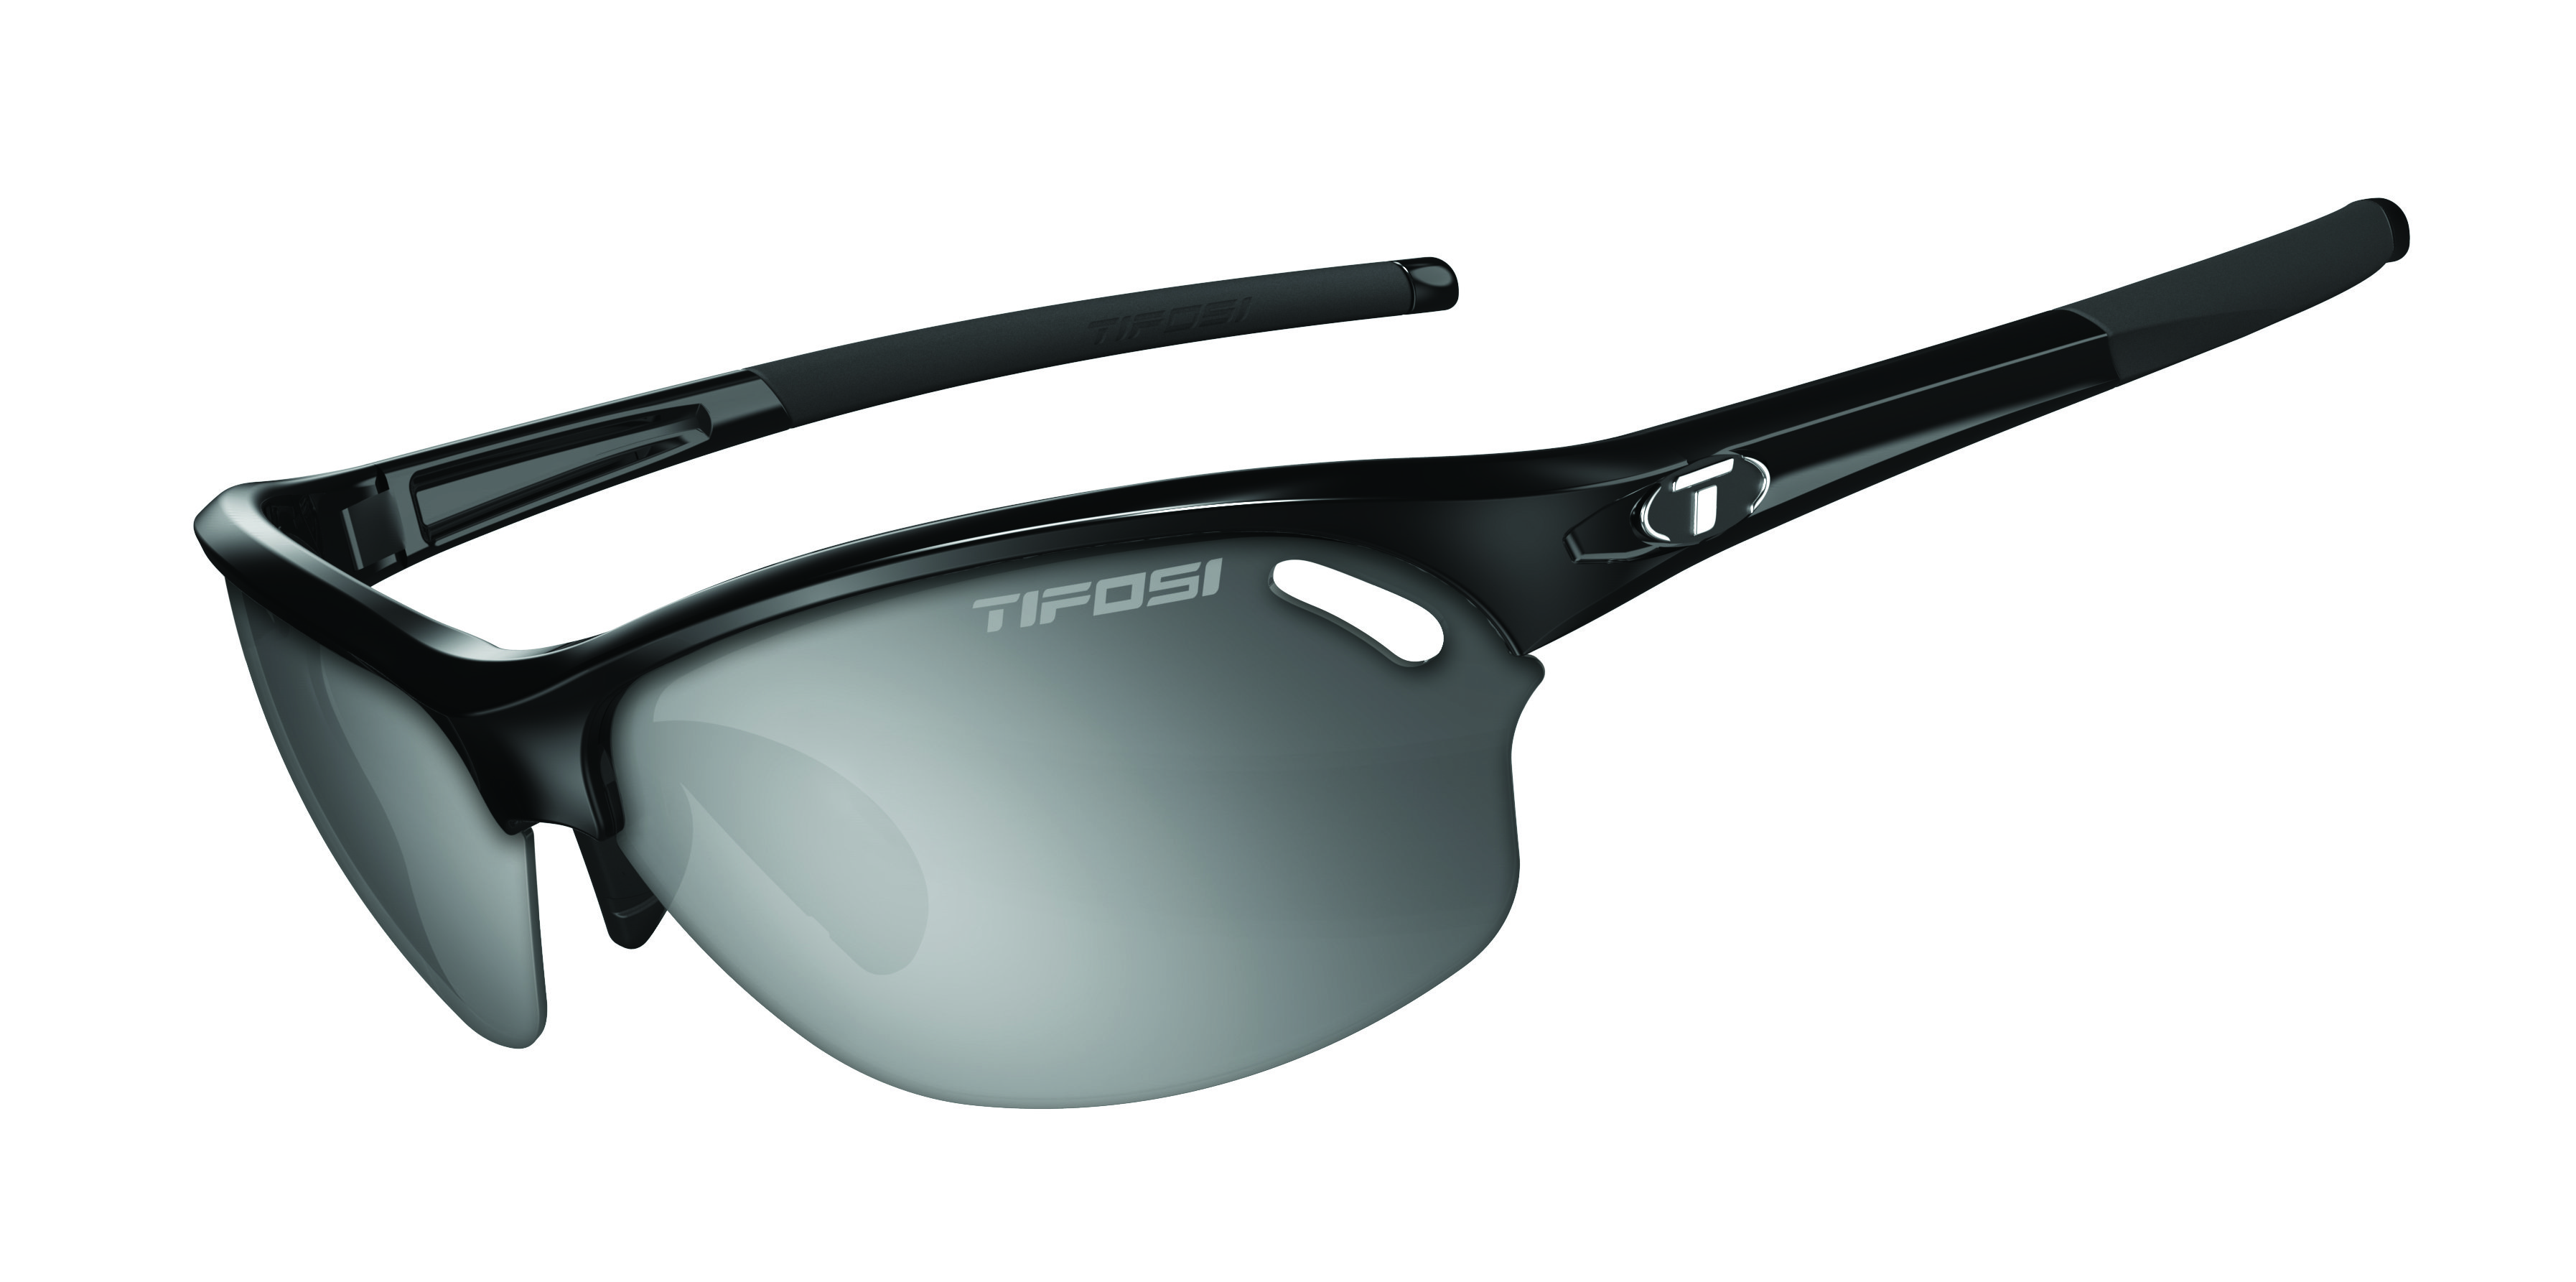 e23cc60d82 Tifosi Wasp Sunglasses A Sight for Sport Eyes